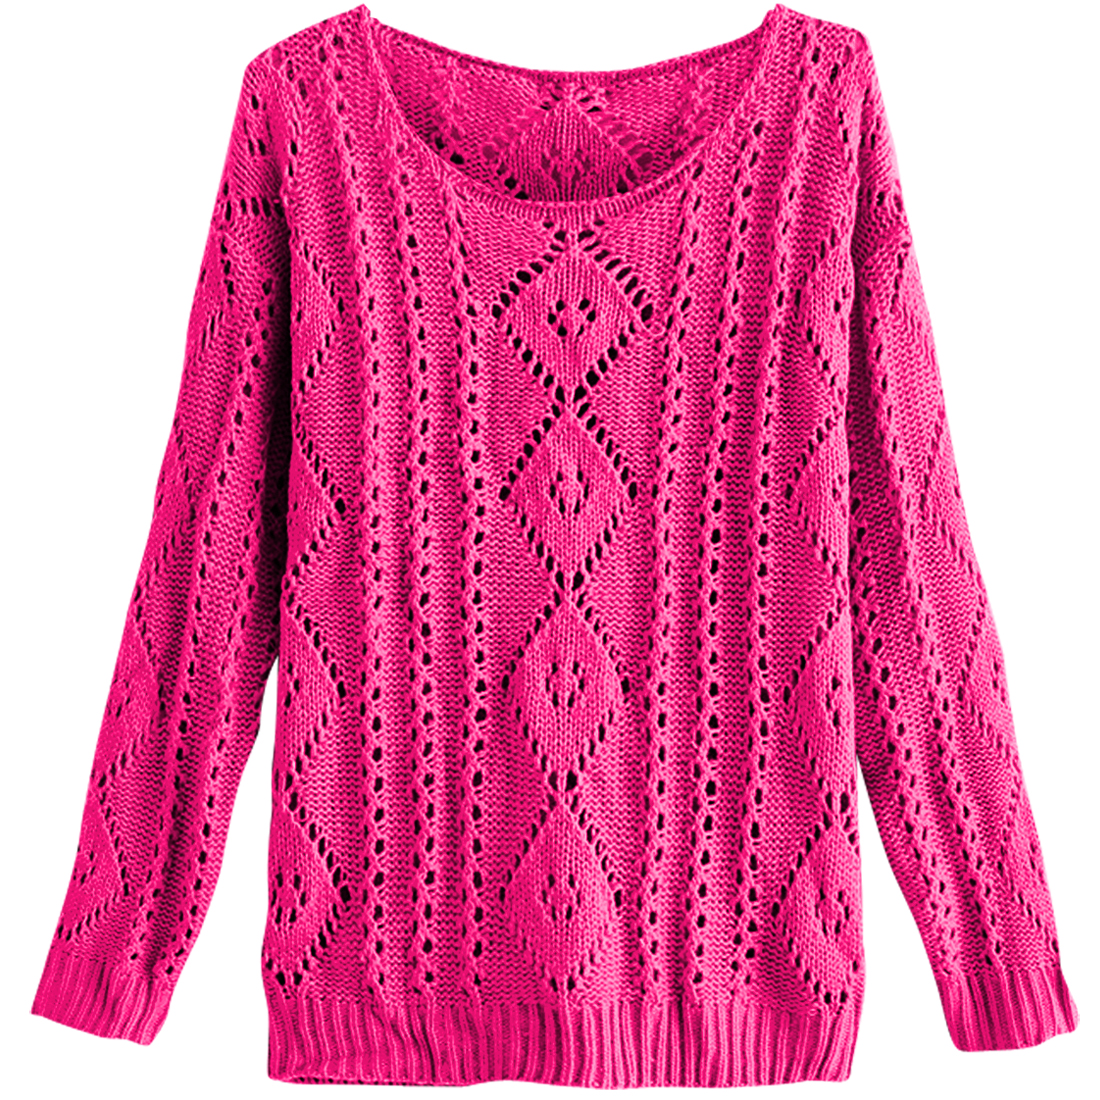 Round Neck Long Sleeve Pullover Fuchsia Knitting Sweater For Lady S